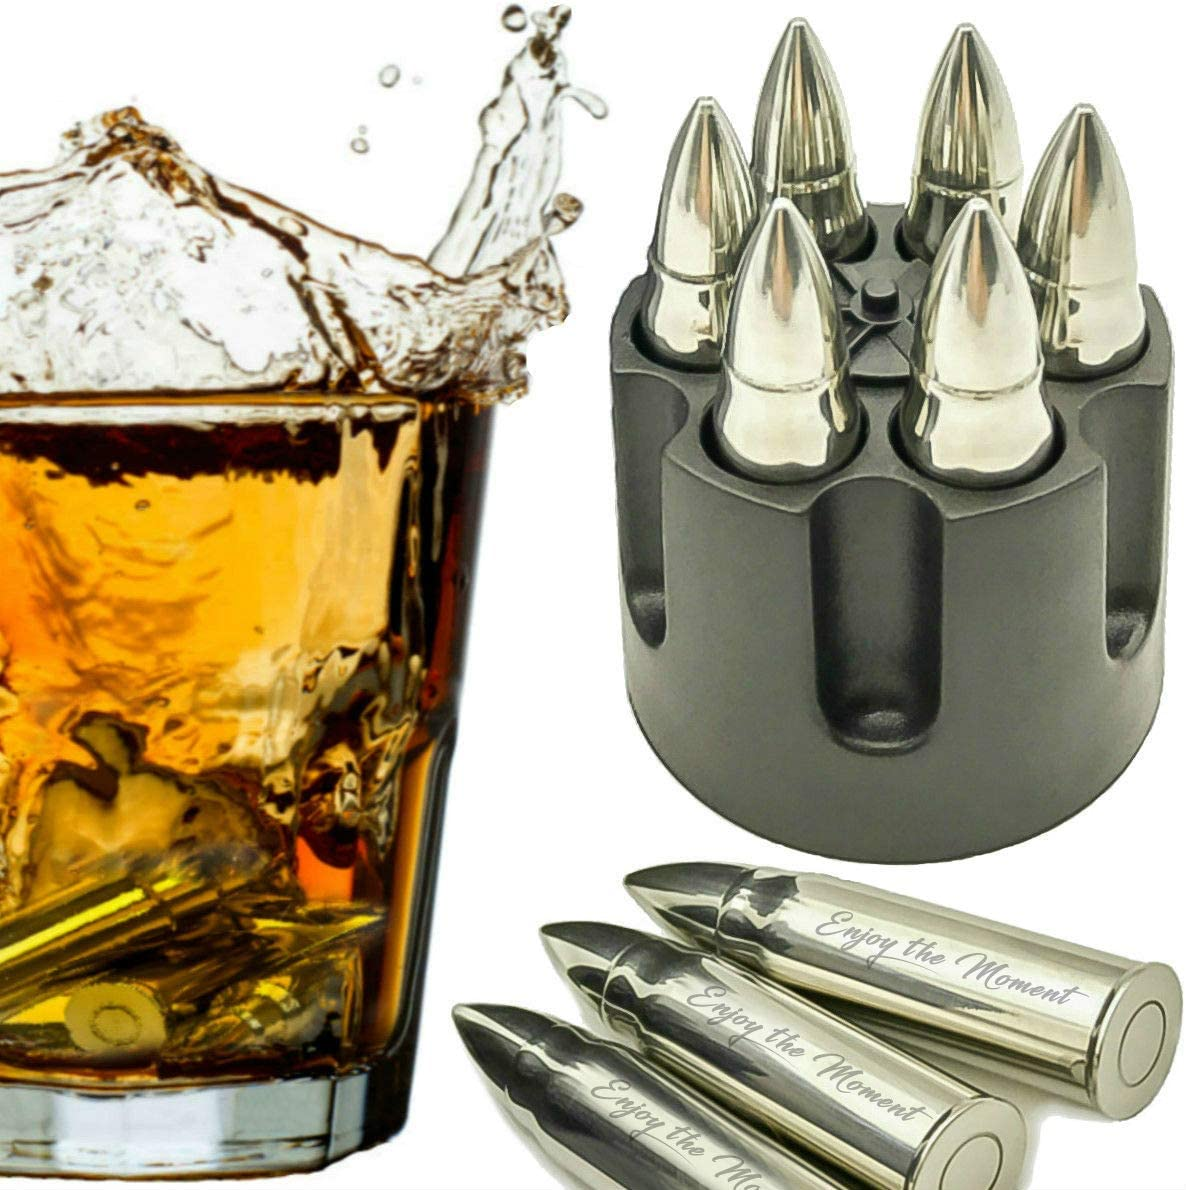 Whiskey Stones Extra Large 6 Laser Engraved Stainless Steel Bullets with Revolver Barrel Base Reusable Chilling Rocks Stone Ice Cubes Chillers Birth Day Gift Set for Father's Day, Military Man